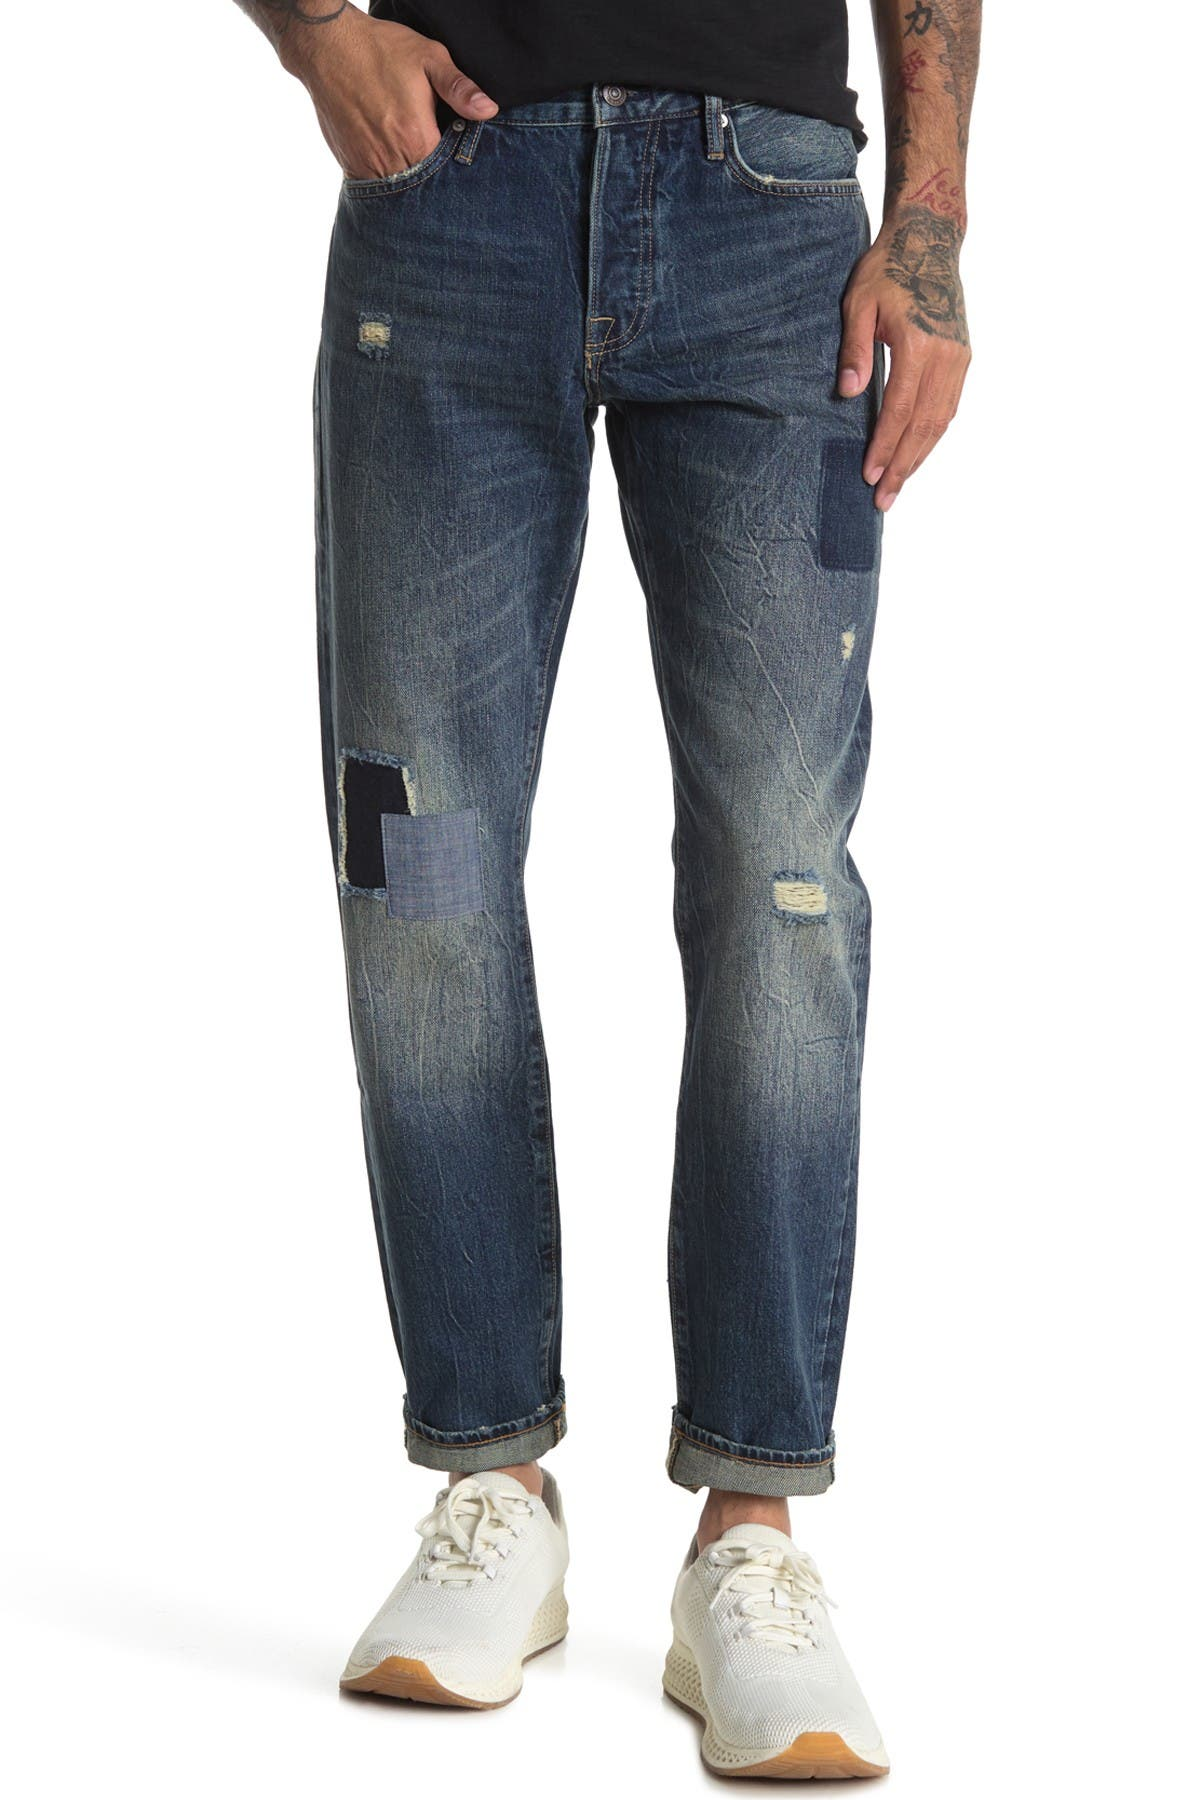 Image of OVADIA AND SONS Distressed Straight Leg Jeans